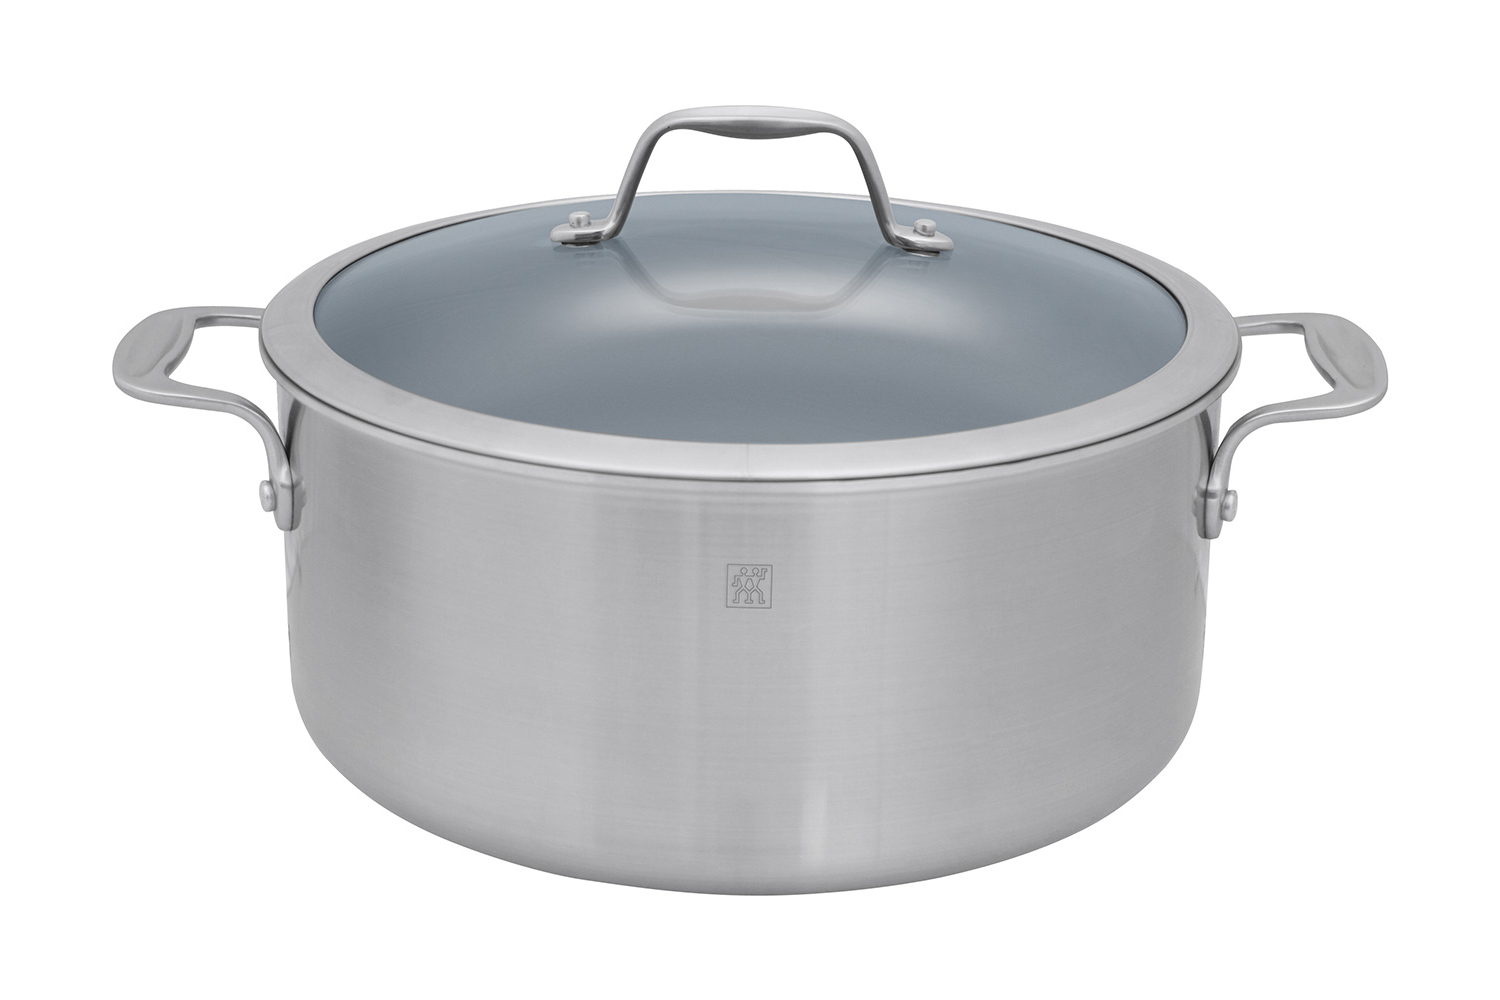 Zwilling Spirit 8 qt. Dutch Oven w/Lid - Ceramic Nonstick Coating